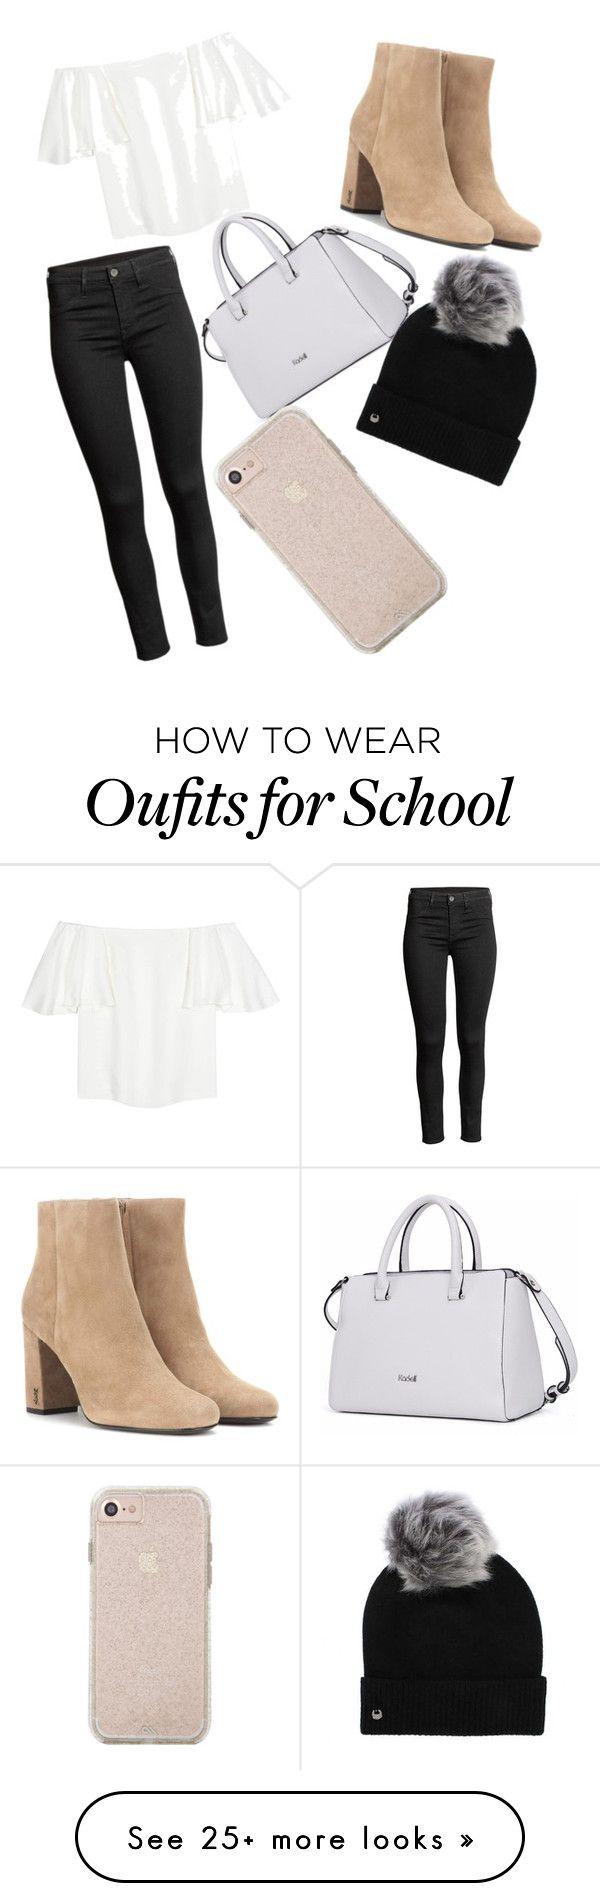 """high school girl"" by madsdad-gl on Polyvore featuring Valentino, Yves Saint Laurent and UGG"